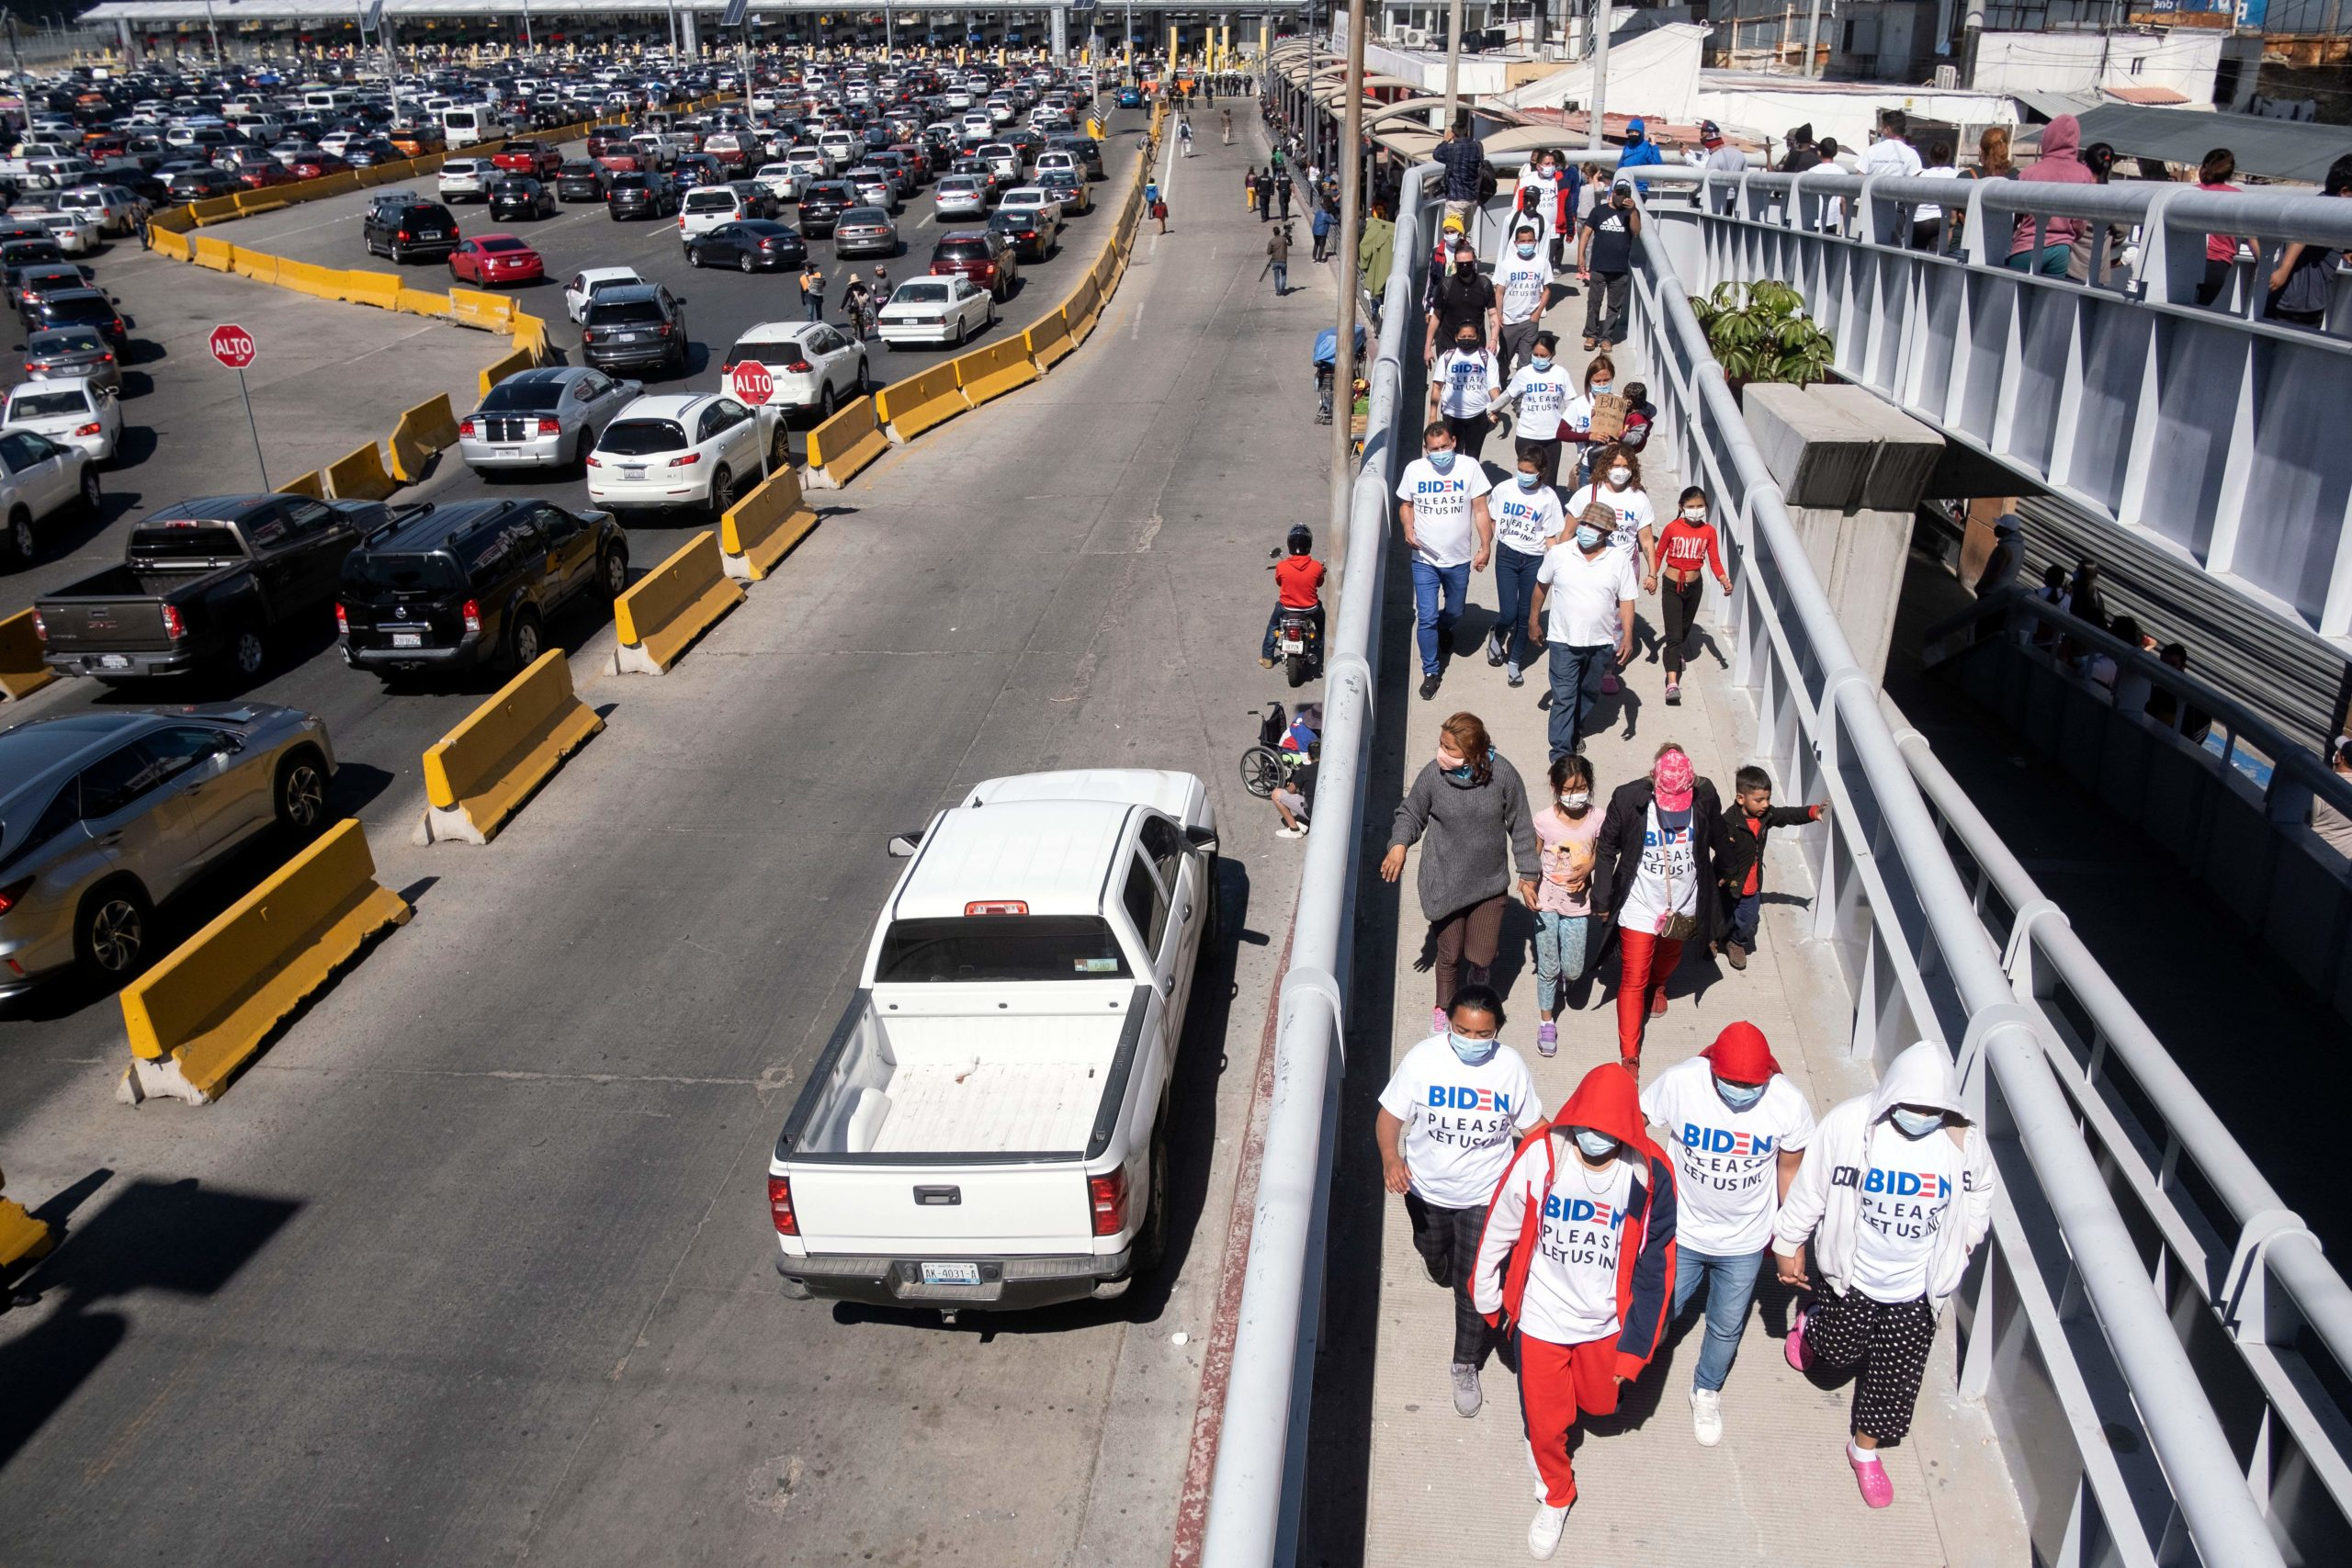 Migrants hold a demonstration demanding clearer United States migration policies, at San Ysidro crossing port in Tijuana, Baja California state, Mexico on March 2, 2021. - Thousands of migrants out of the Migrant Protection Protocol (MPP) program are stranded along the US-Mexico border without knowing when or how they will be able to start their migratory process with US authorities. (Photo by Guillermo Arias / AFP) (Photo by GUILLERMO ARIAS/AFP via Getty Images)